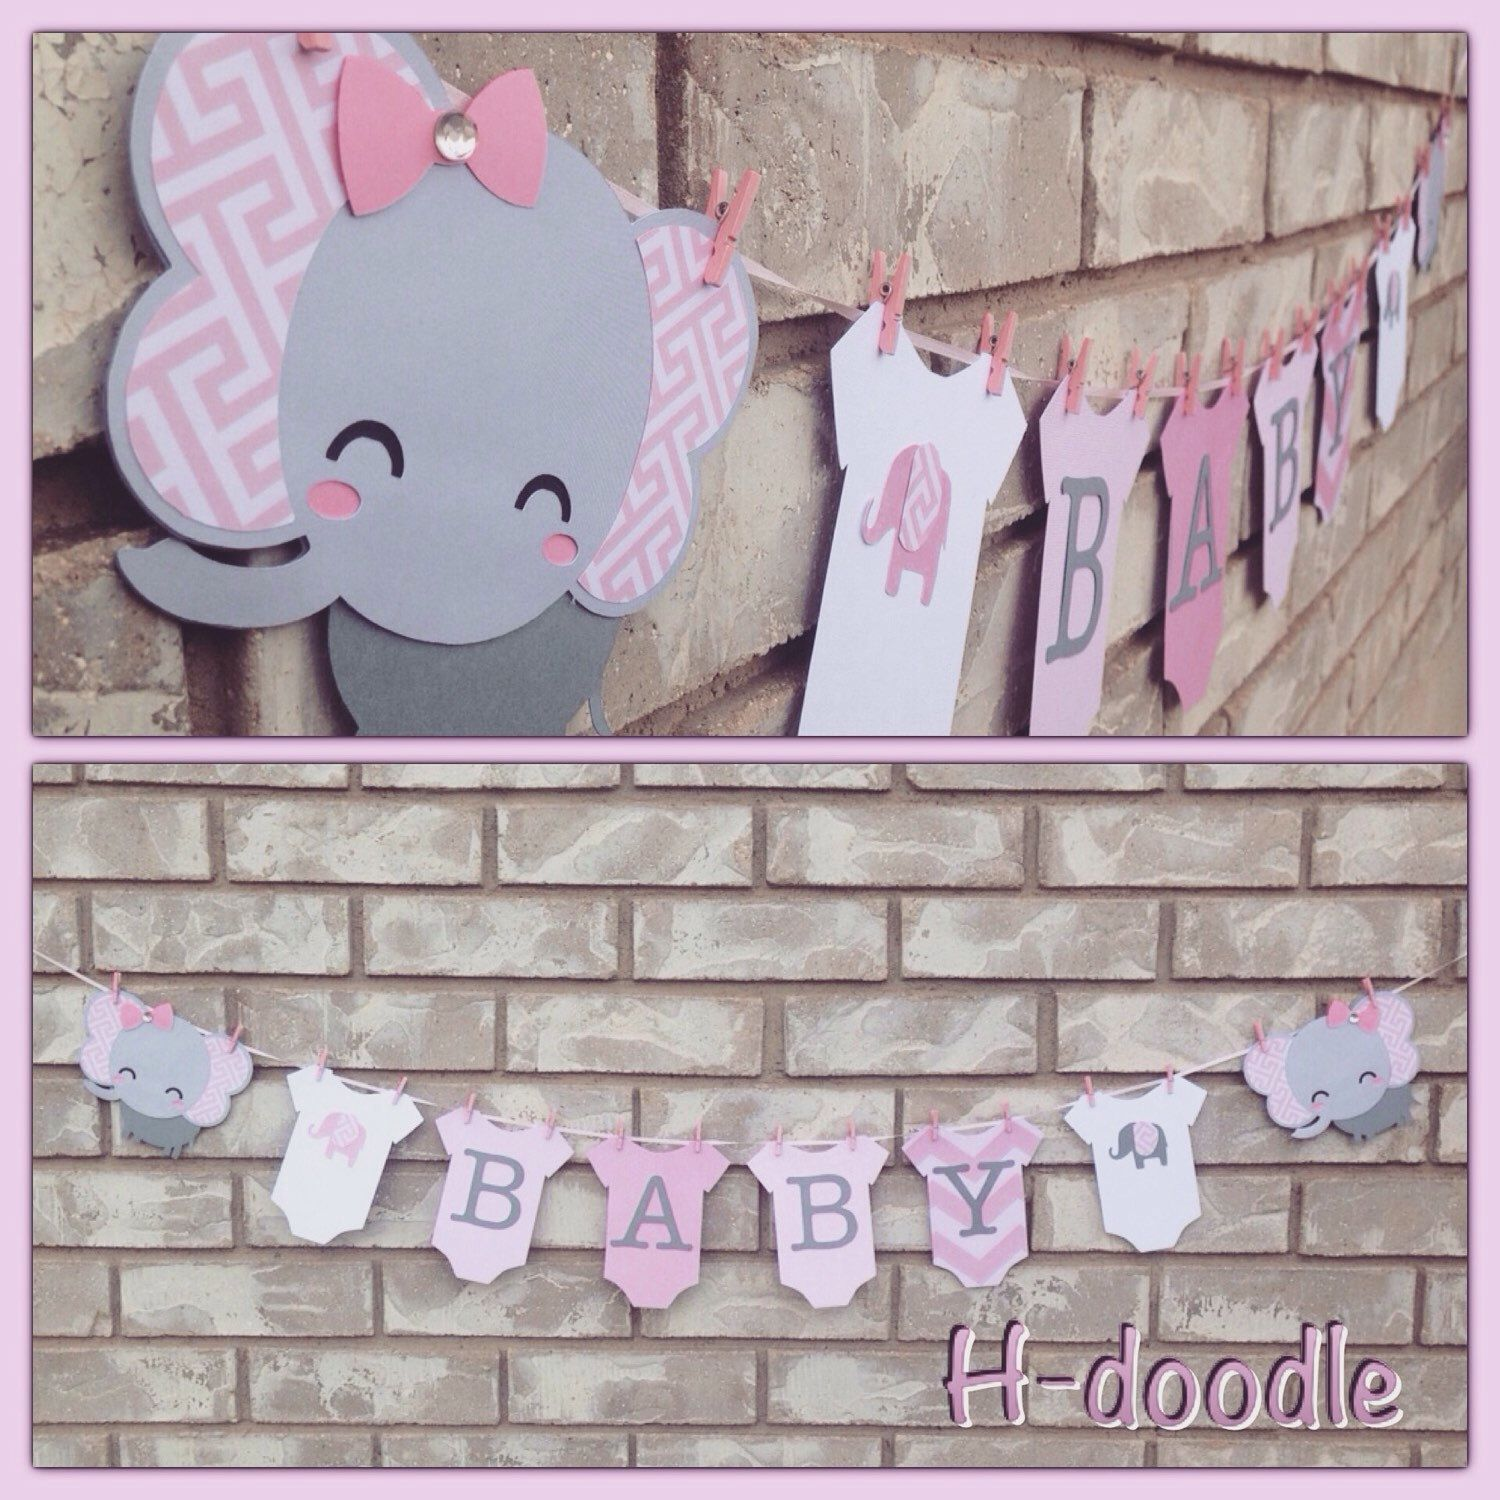 Gianna S Pink And Gray Elephant Nursery Reveal: Pin By Heidi Prigmore On Hdoodle Party Line In 2019